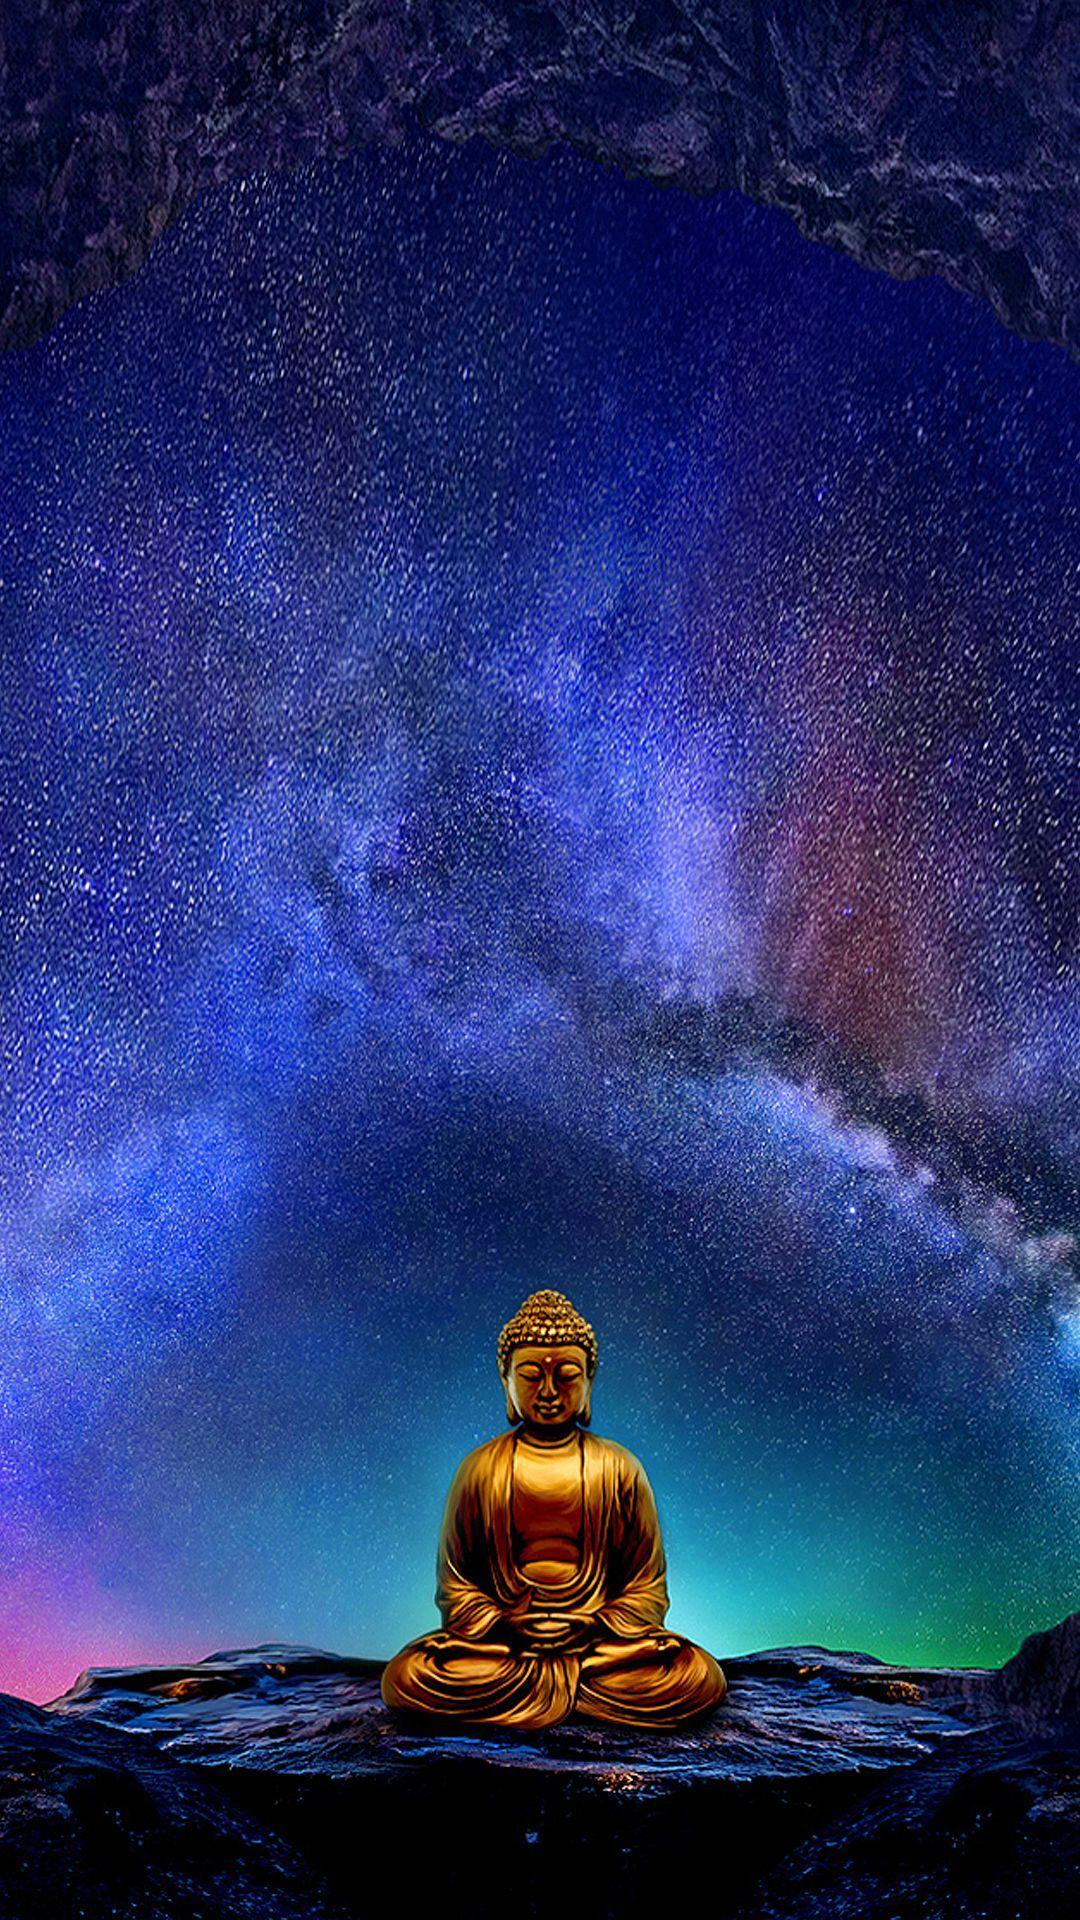 Buddha Wallpapers for Mobile Devices – Artwork by GoodVibesGallery